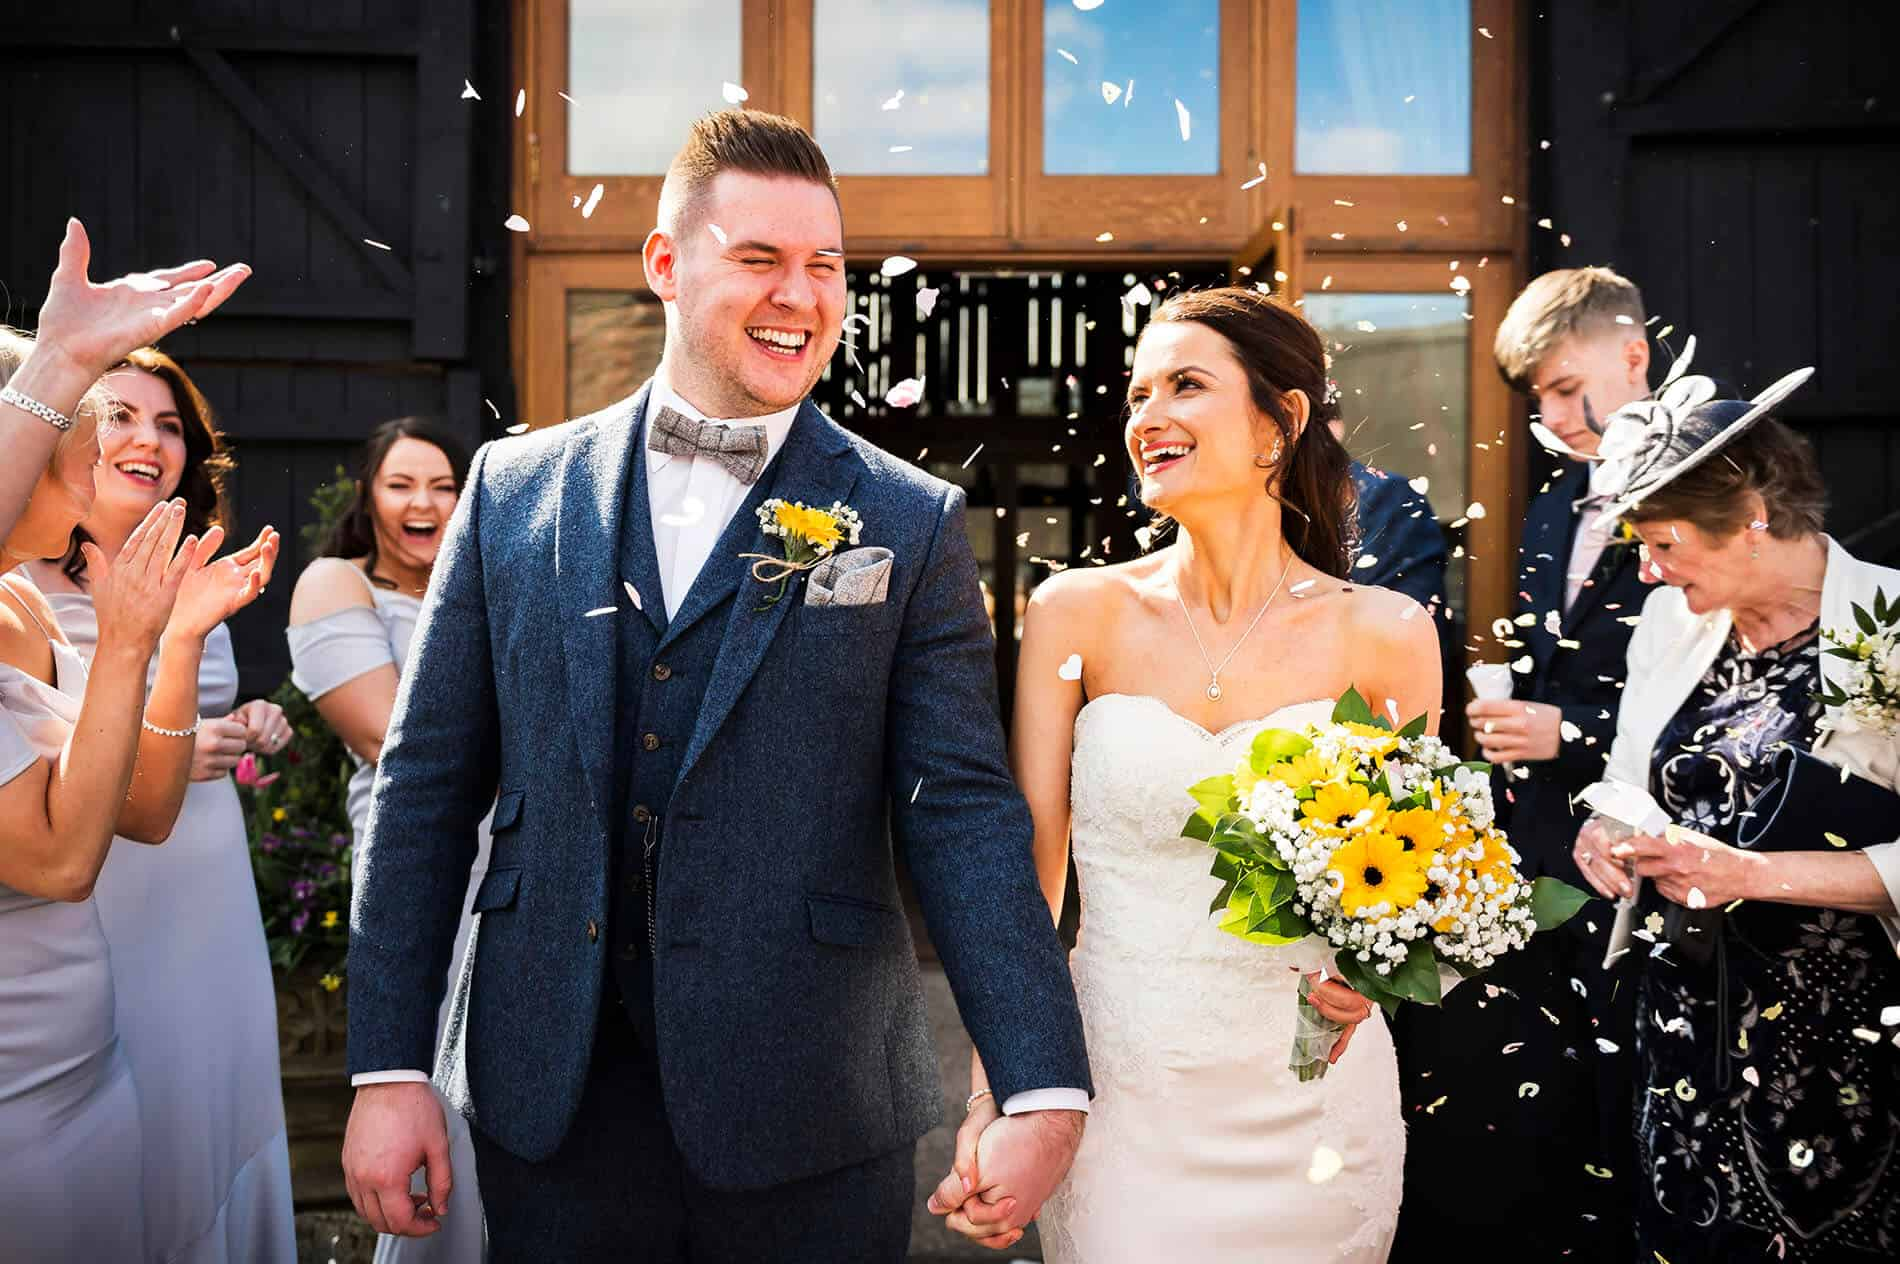 Hundred House Wedding Photographer - Philip James covers Birmingham, The West Midlands, Solihull and Destination weddings. Wedding photography Birmingham is my passion - home